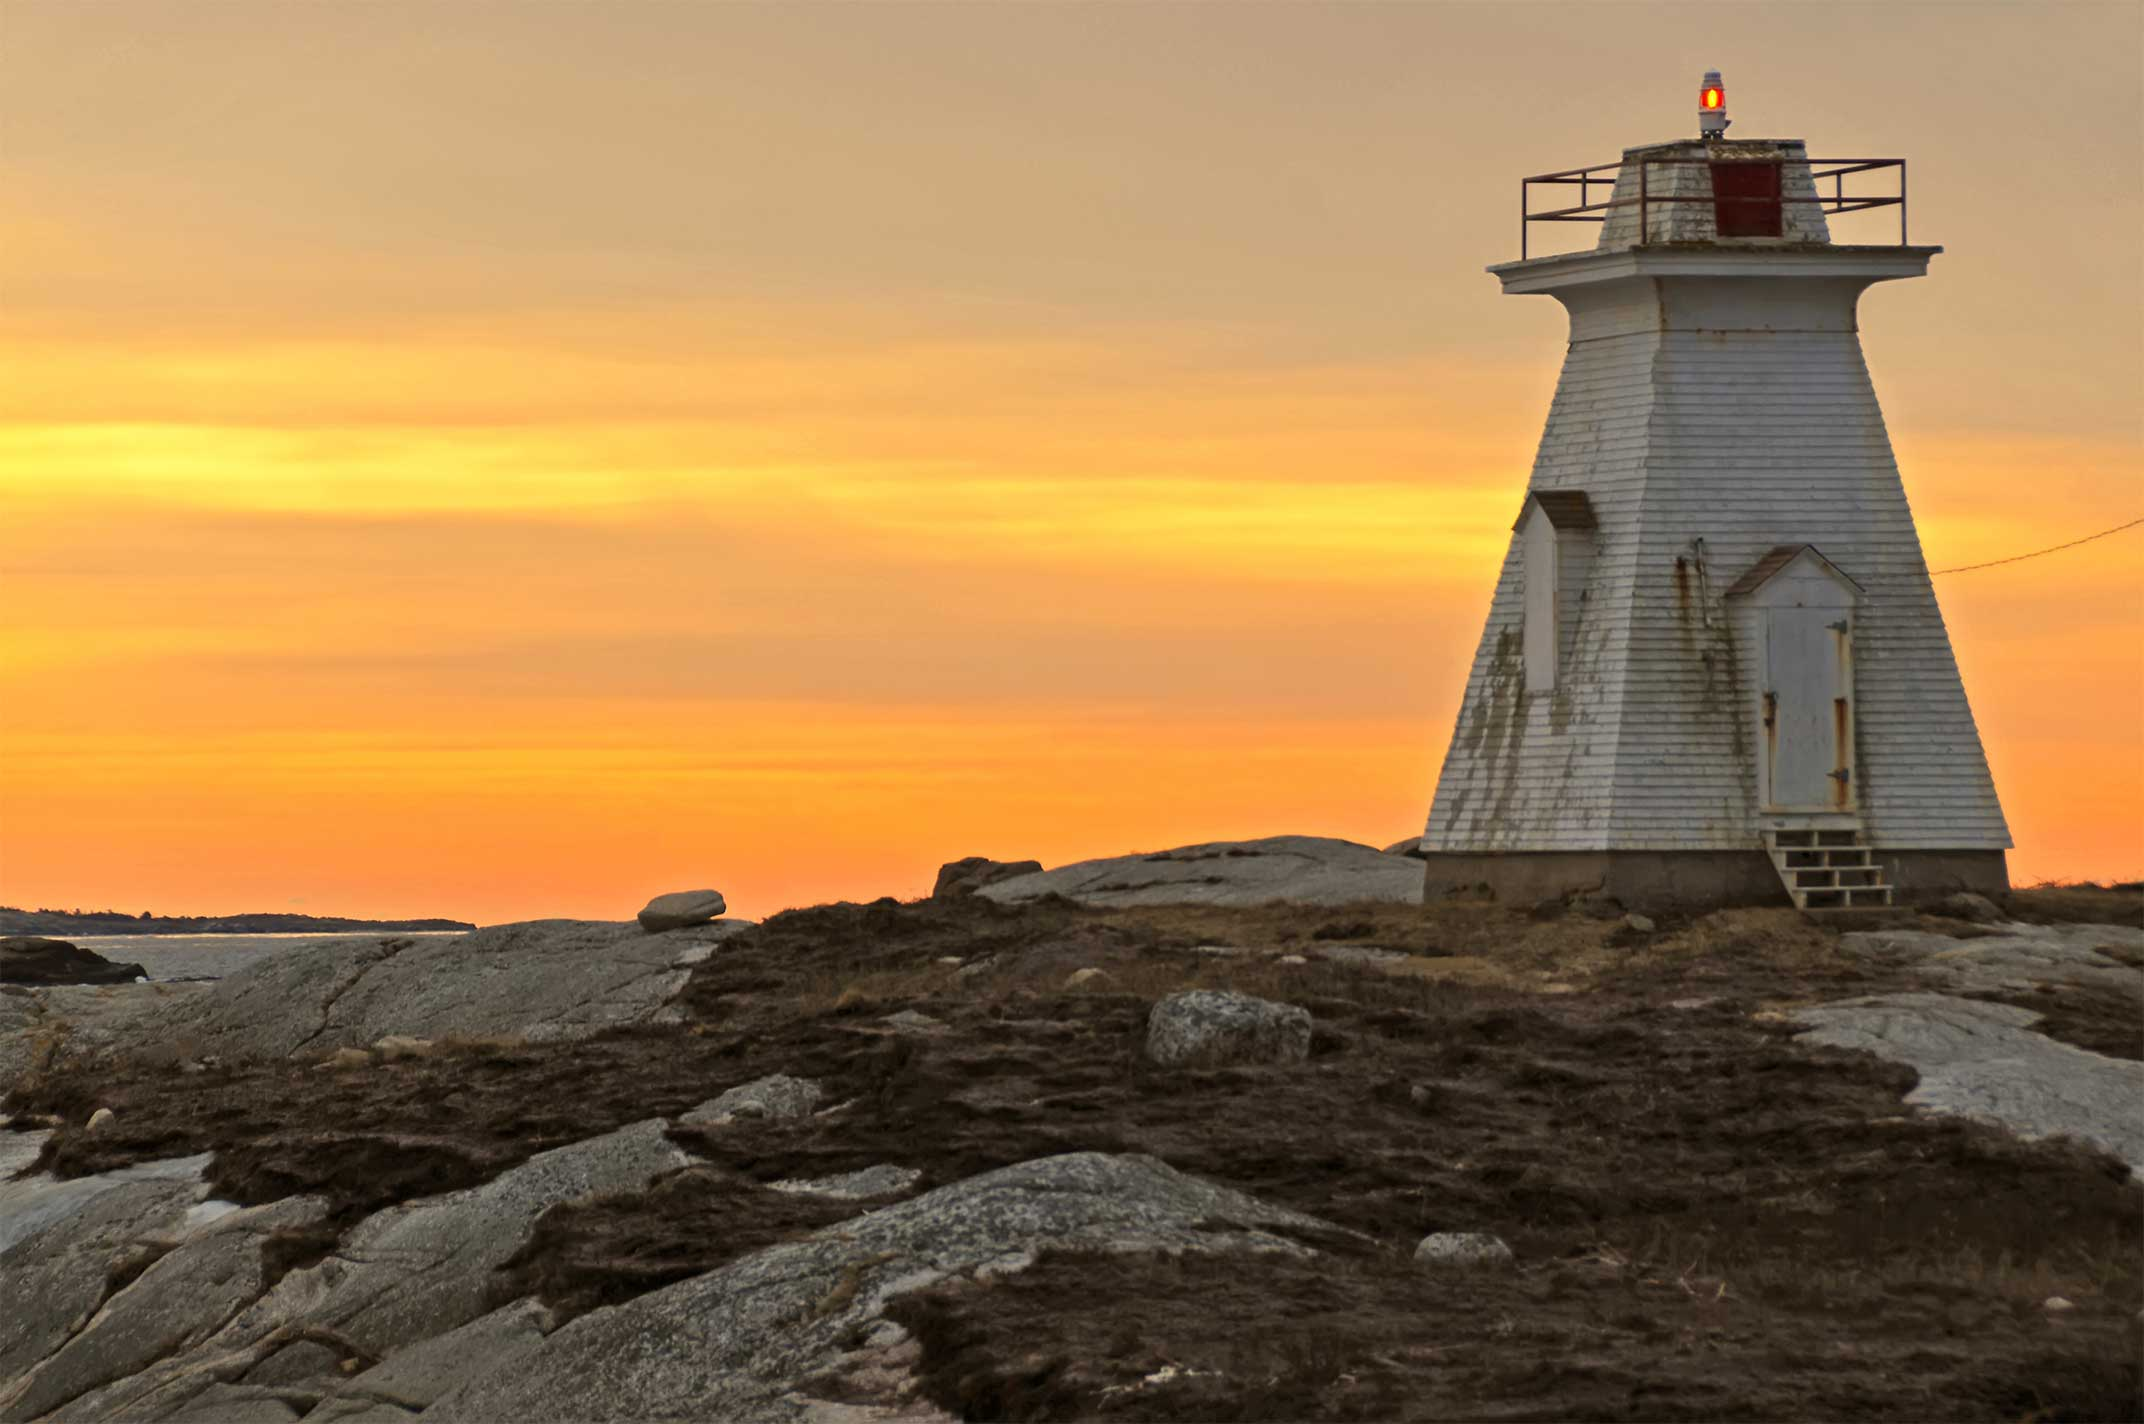 Lighthouse location: On Shipley Head, entrance to Terence Bay, Nova Scotia, Canada. Photo credit: Dennis Jarvis